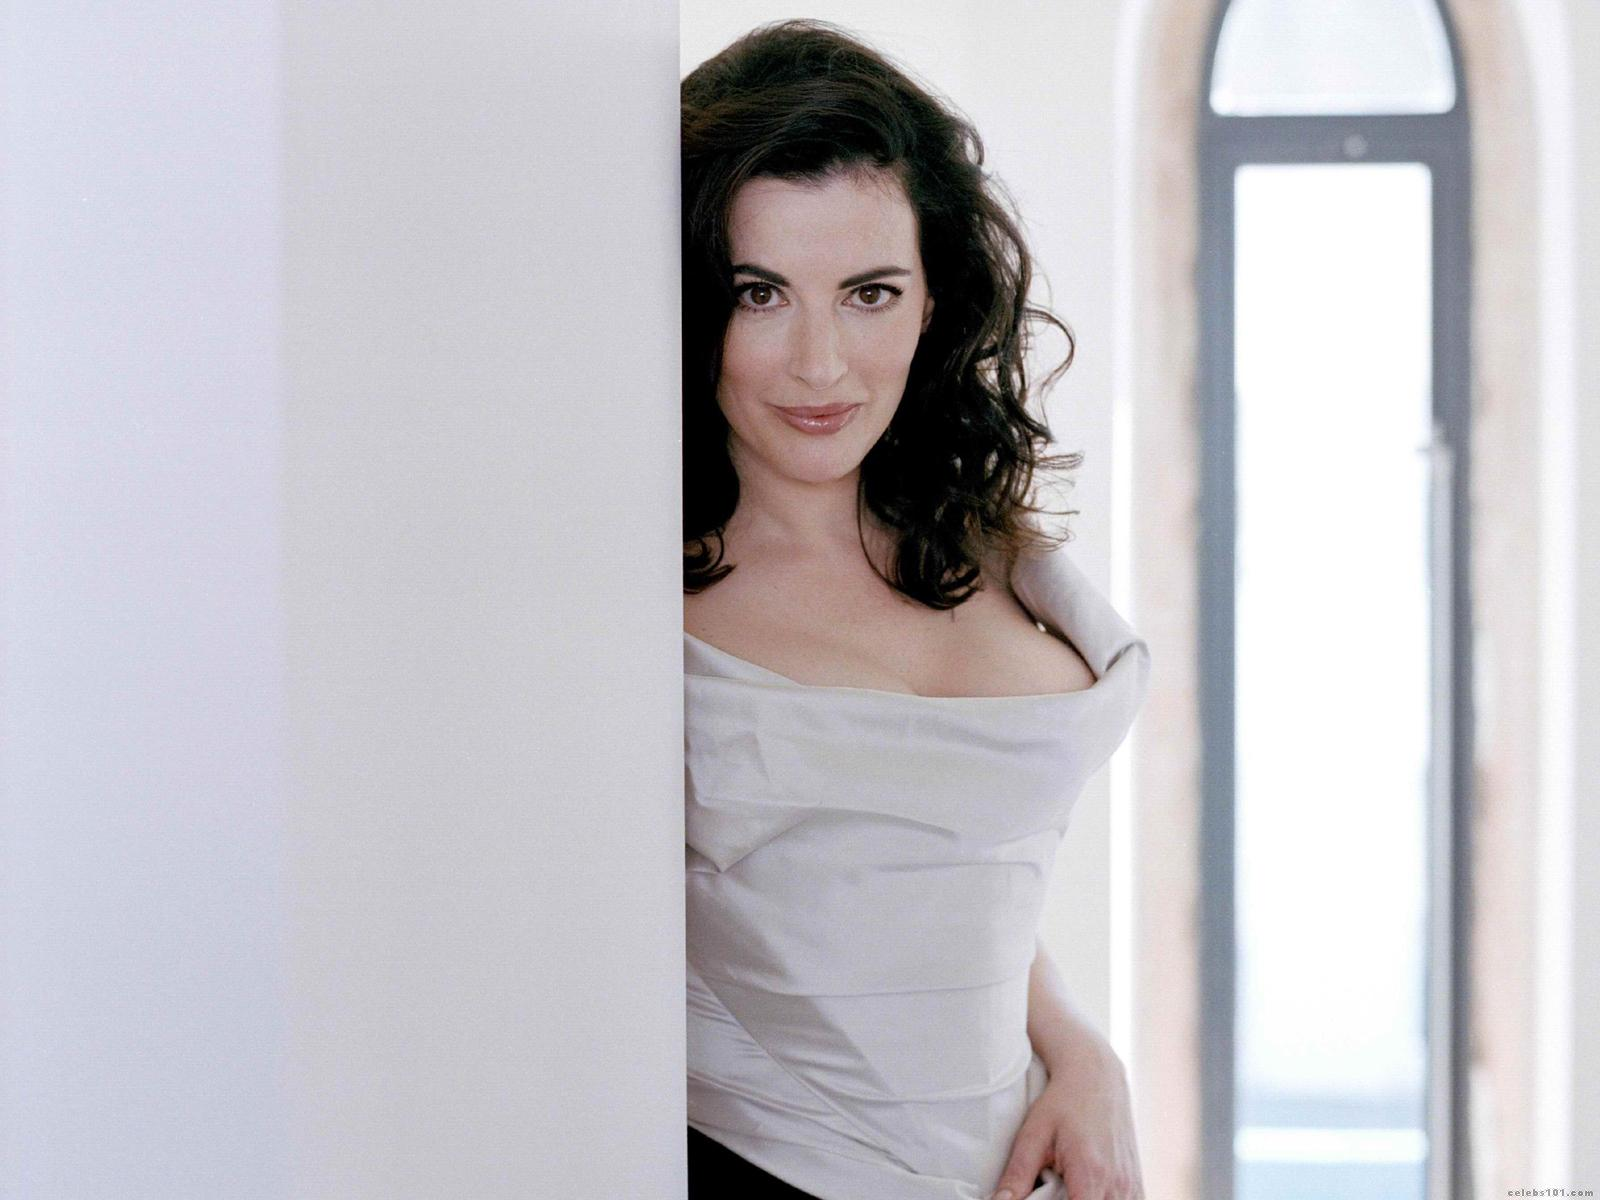 Nigella Lawson 6 mature preview tgp. mature preview tgp. drum music to have sex